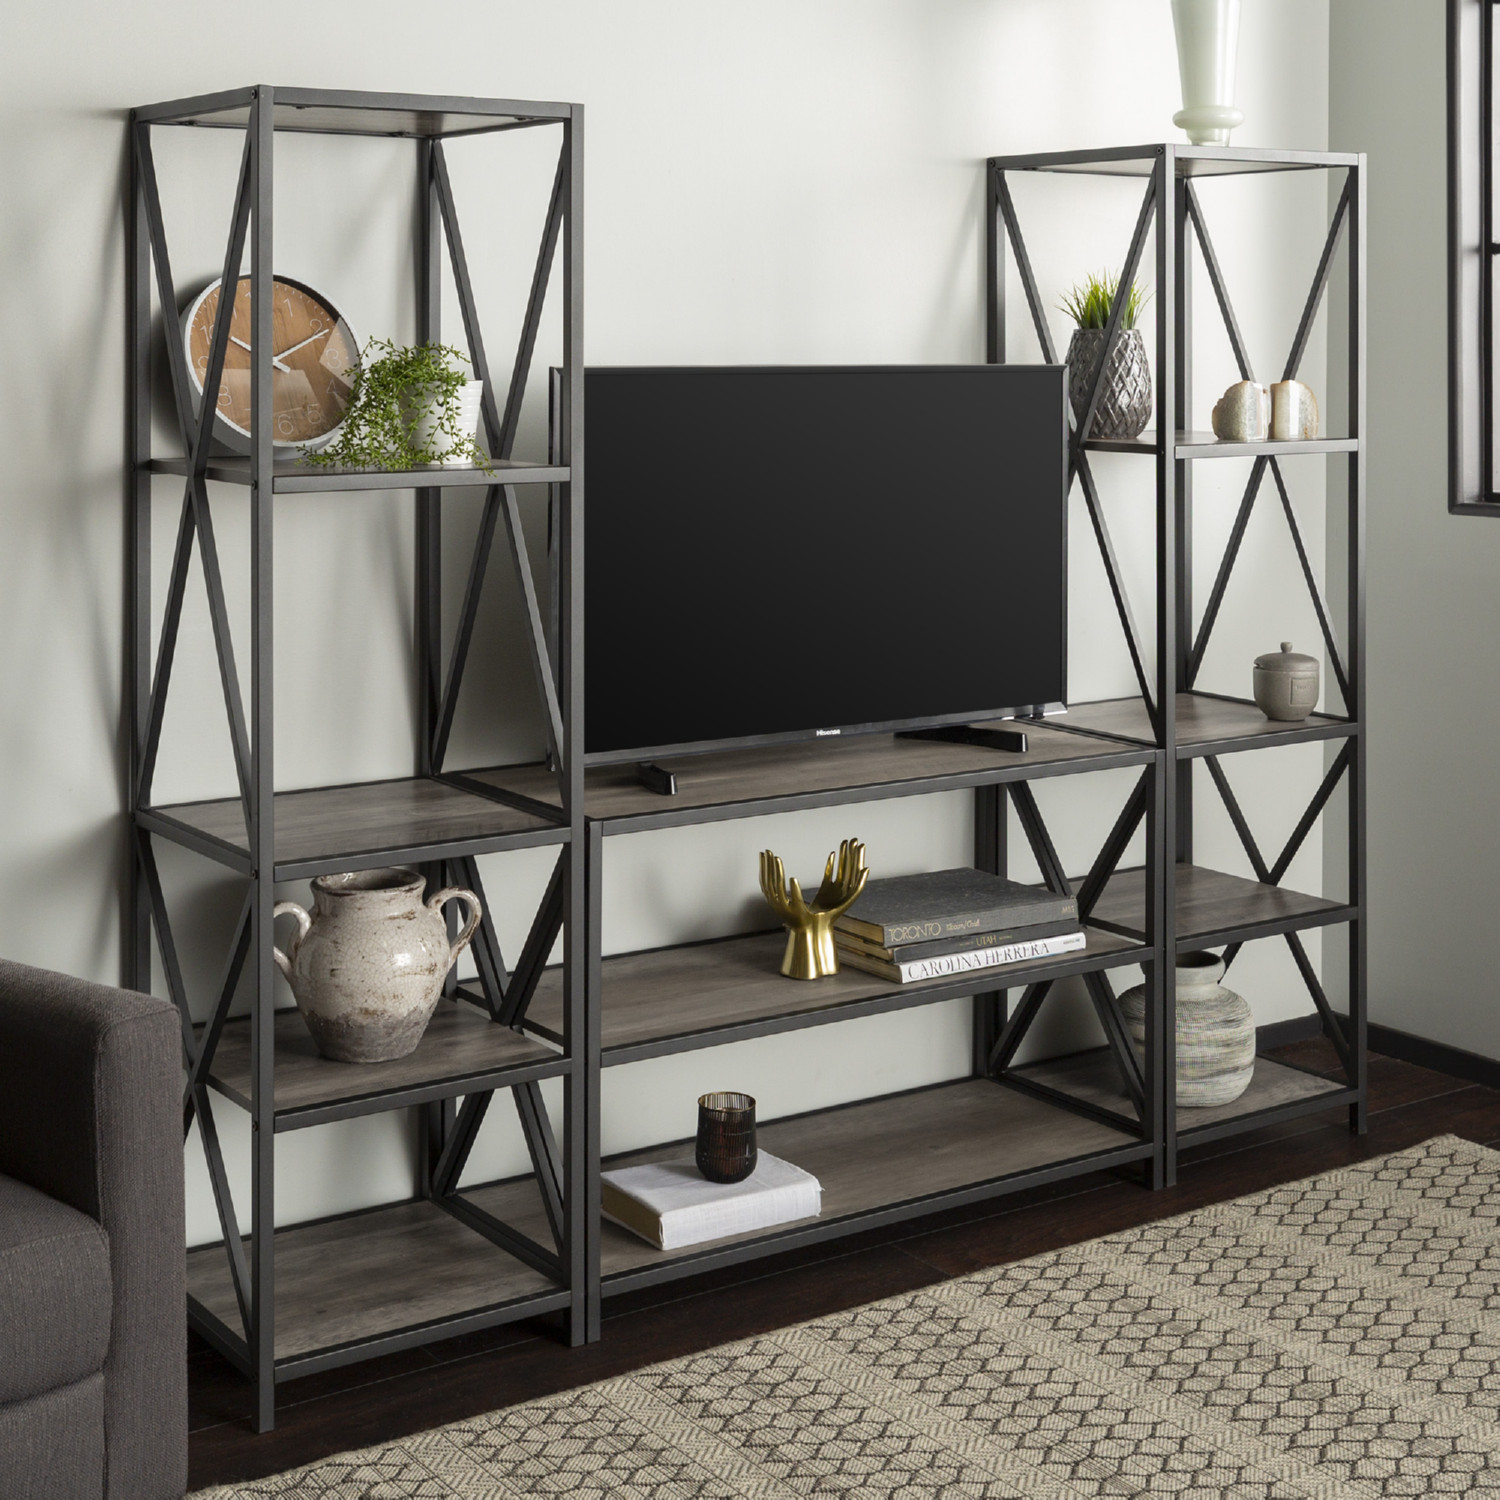 3 Piece Rustic Industrial Bookcase Set In Grey Wash Finish By Walker Edison